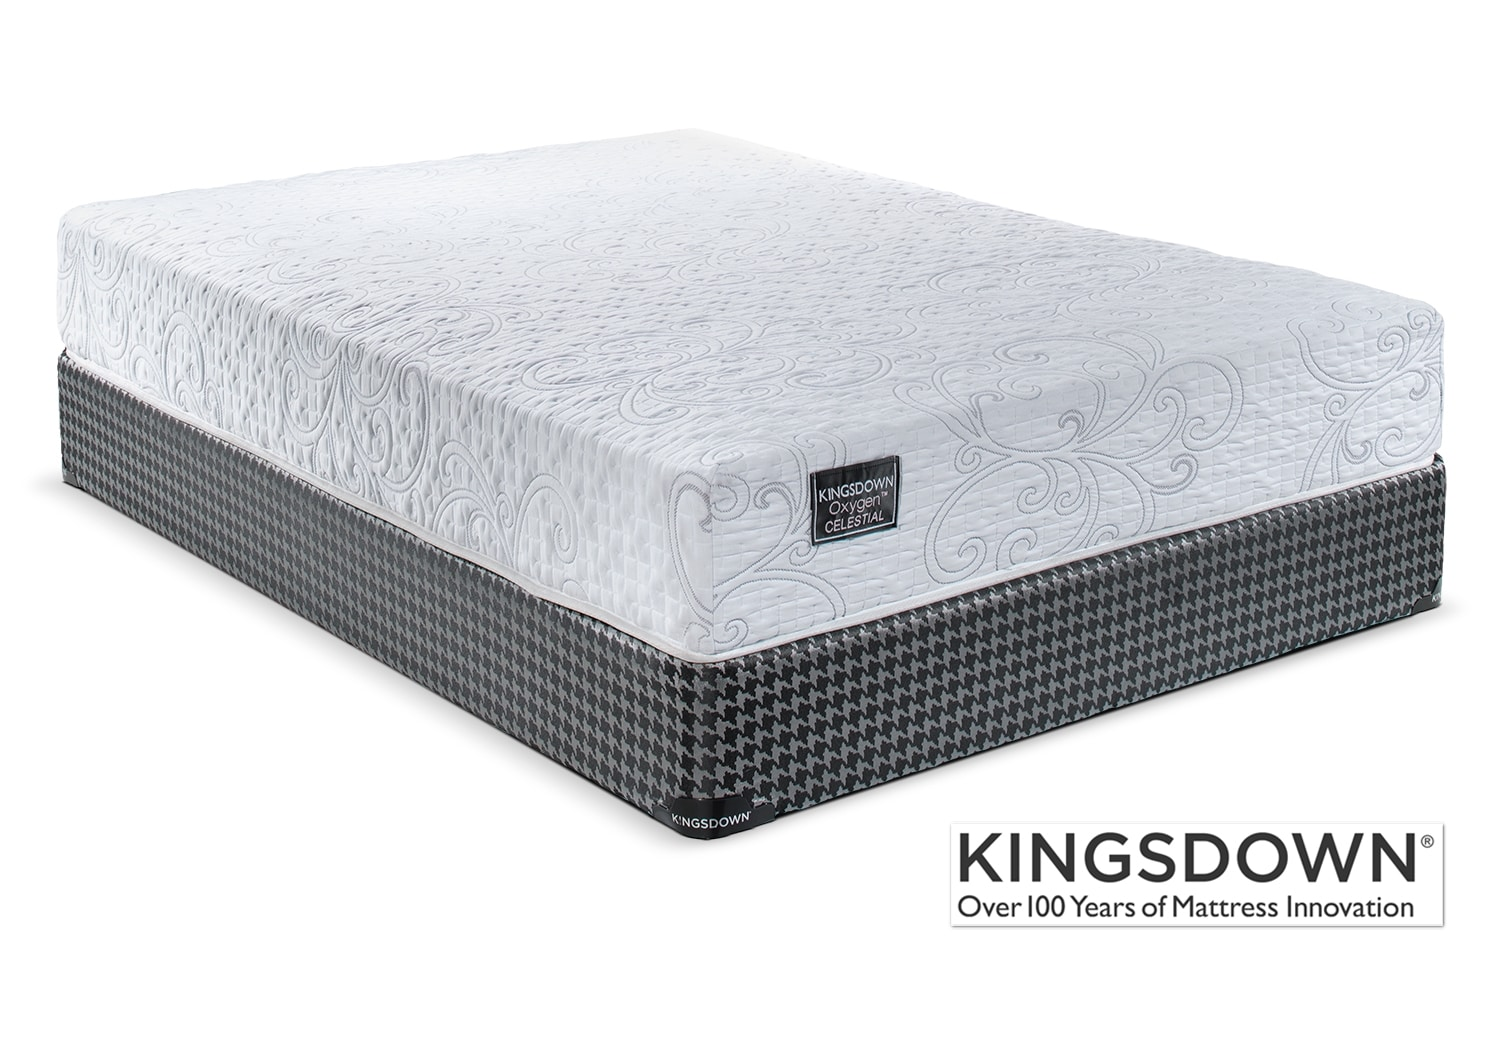 Kingsdown Celestial Twin Mattress/Boxspring Set